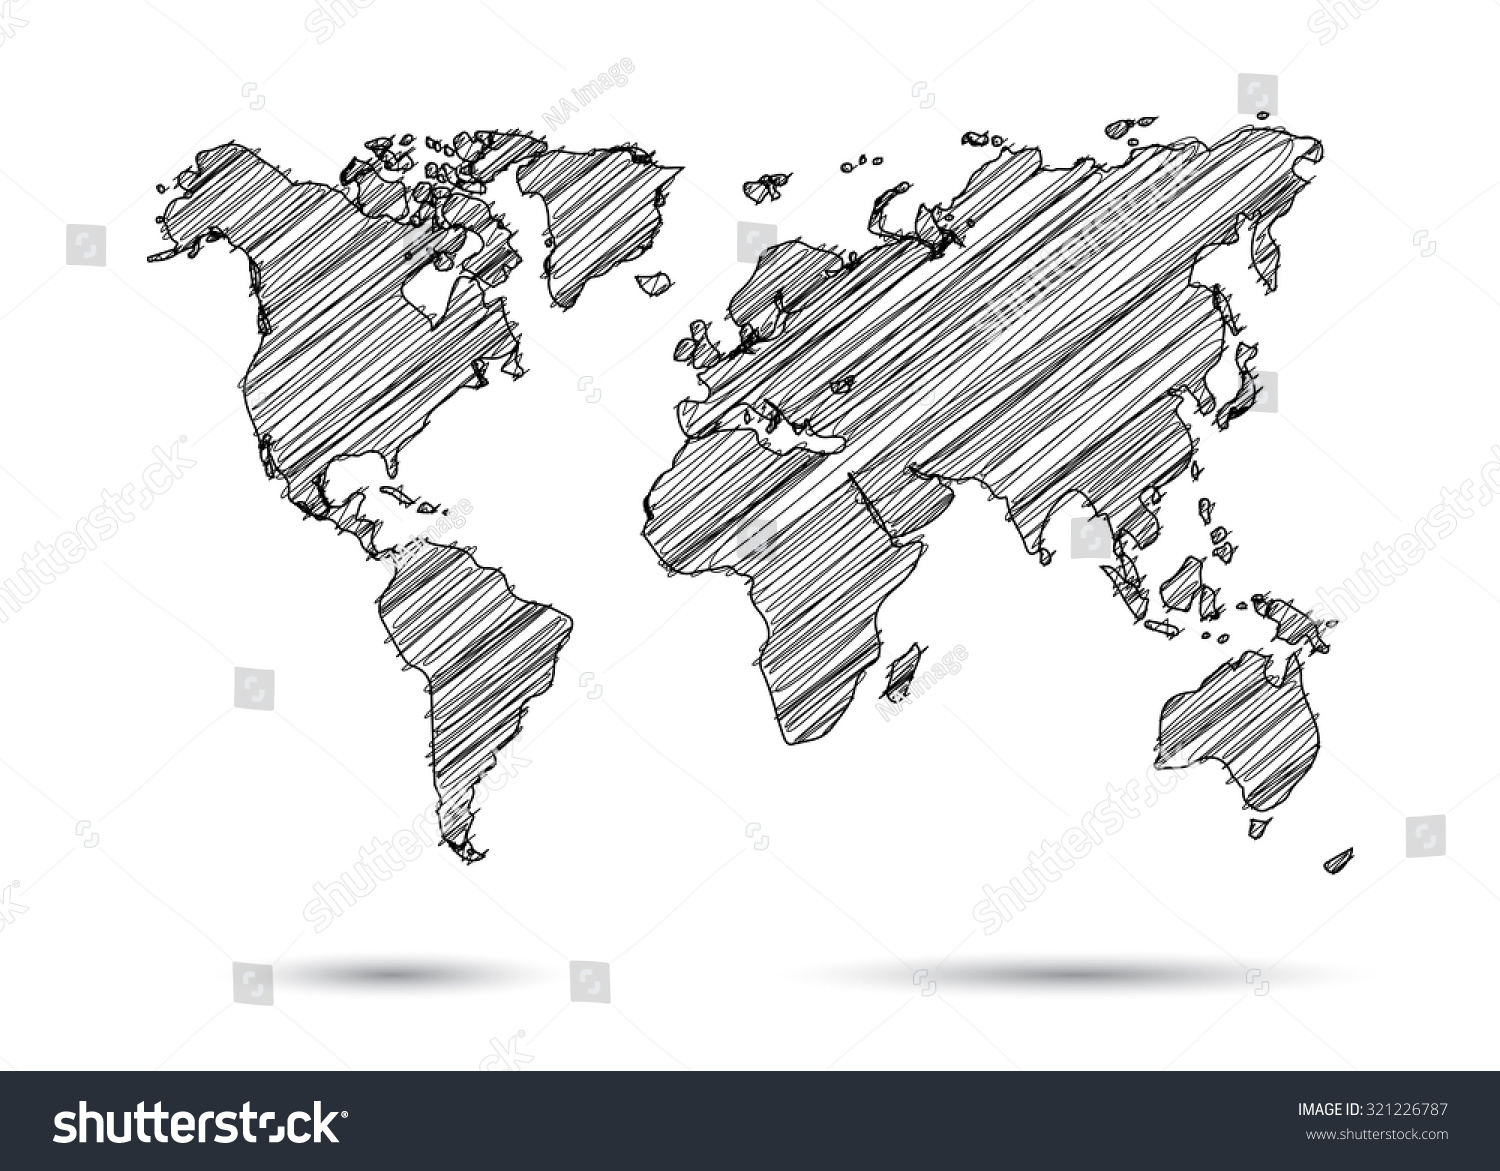 World Map Hand Draw Stock Vector (Royalty Free) 321226787 - Shutterstock